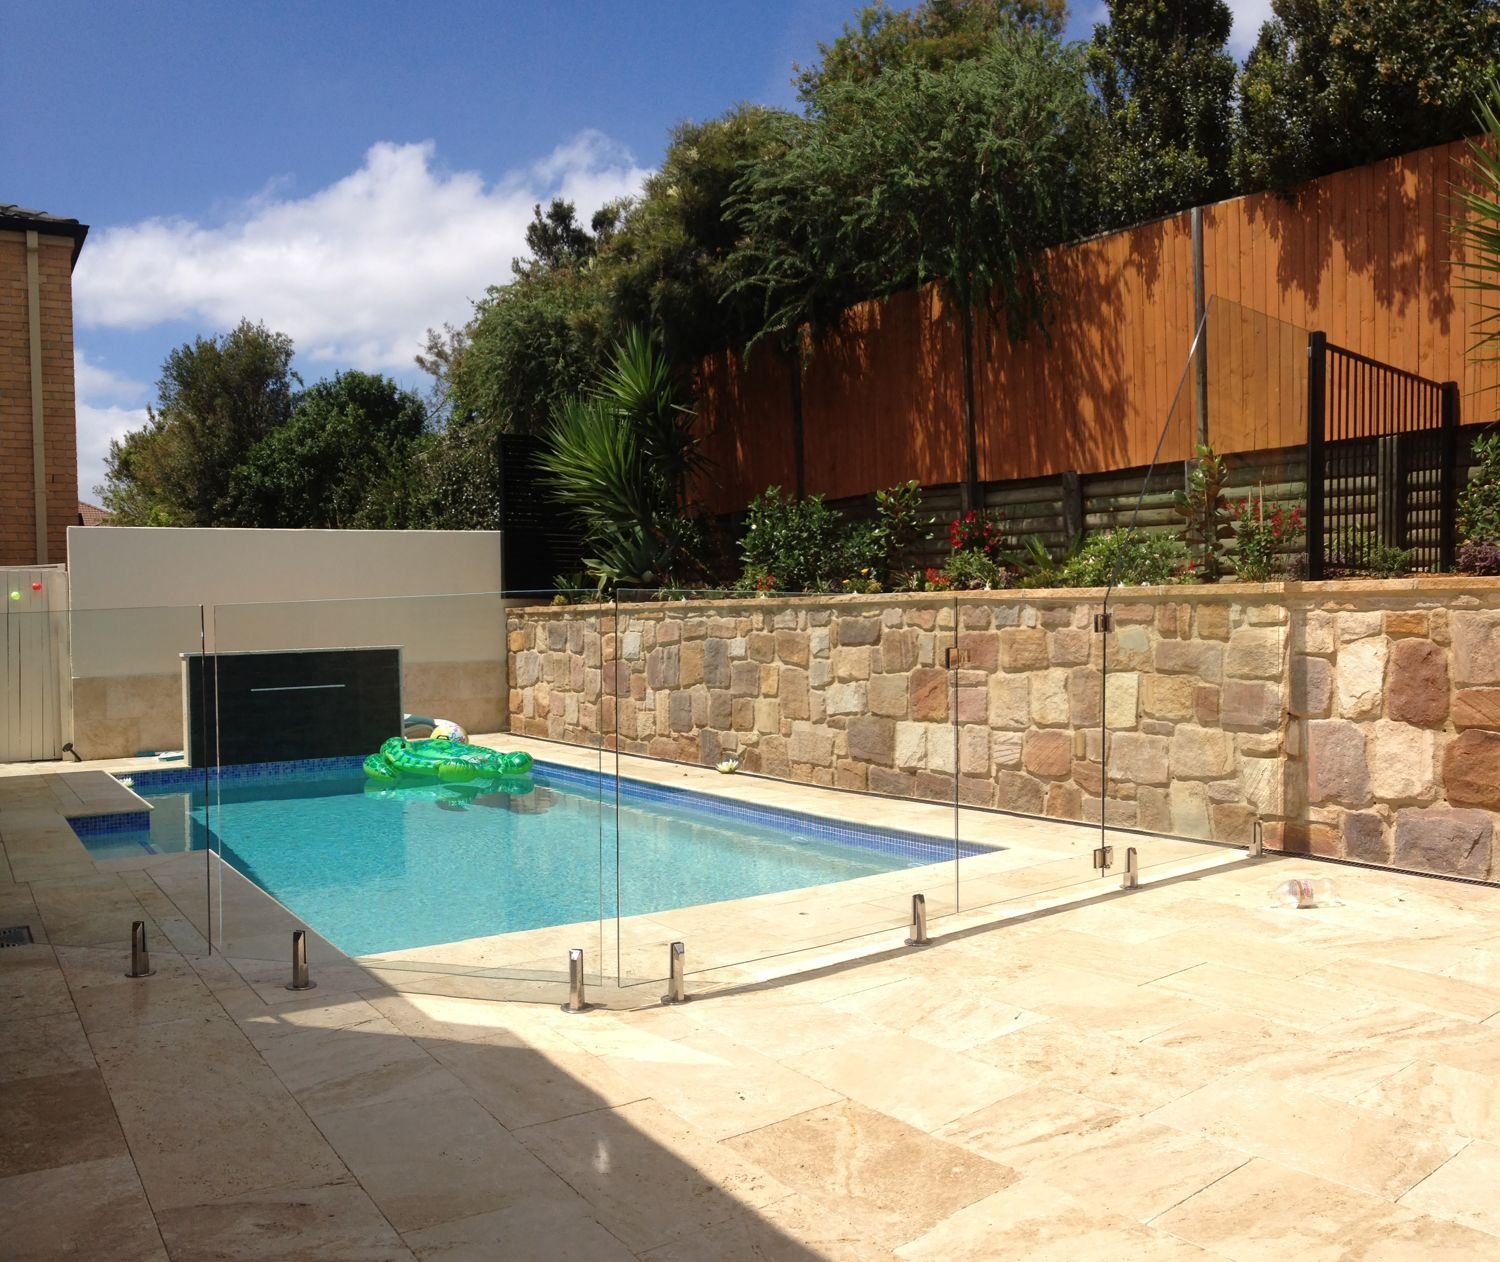 Pool Fence Over Retaining Wall Google Search Water In